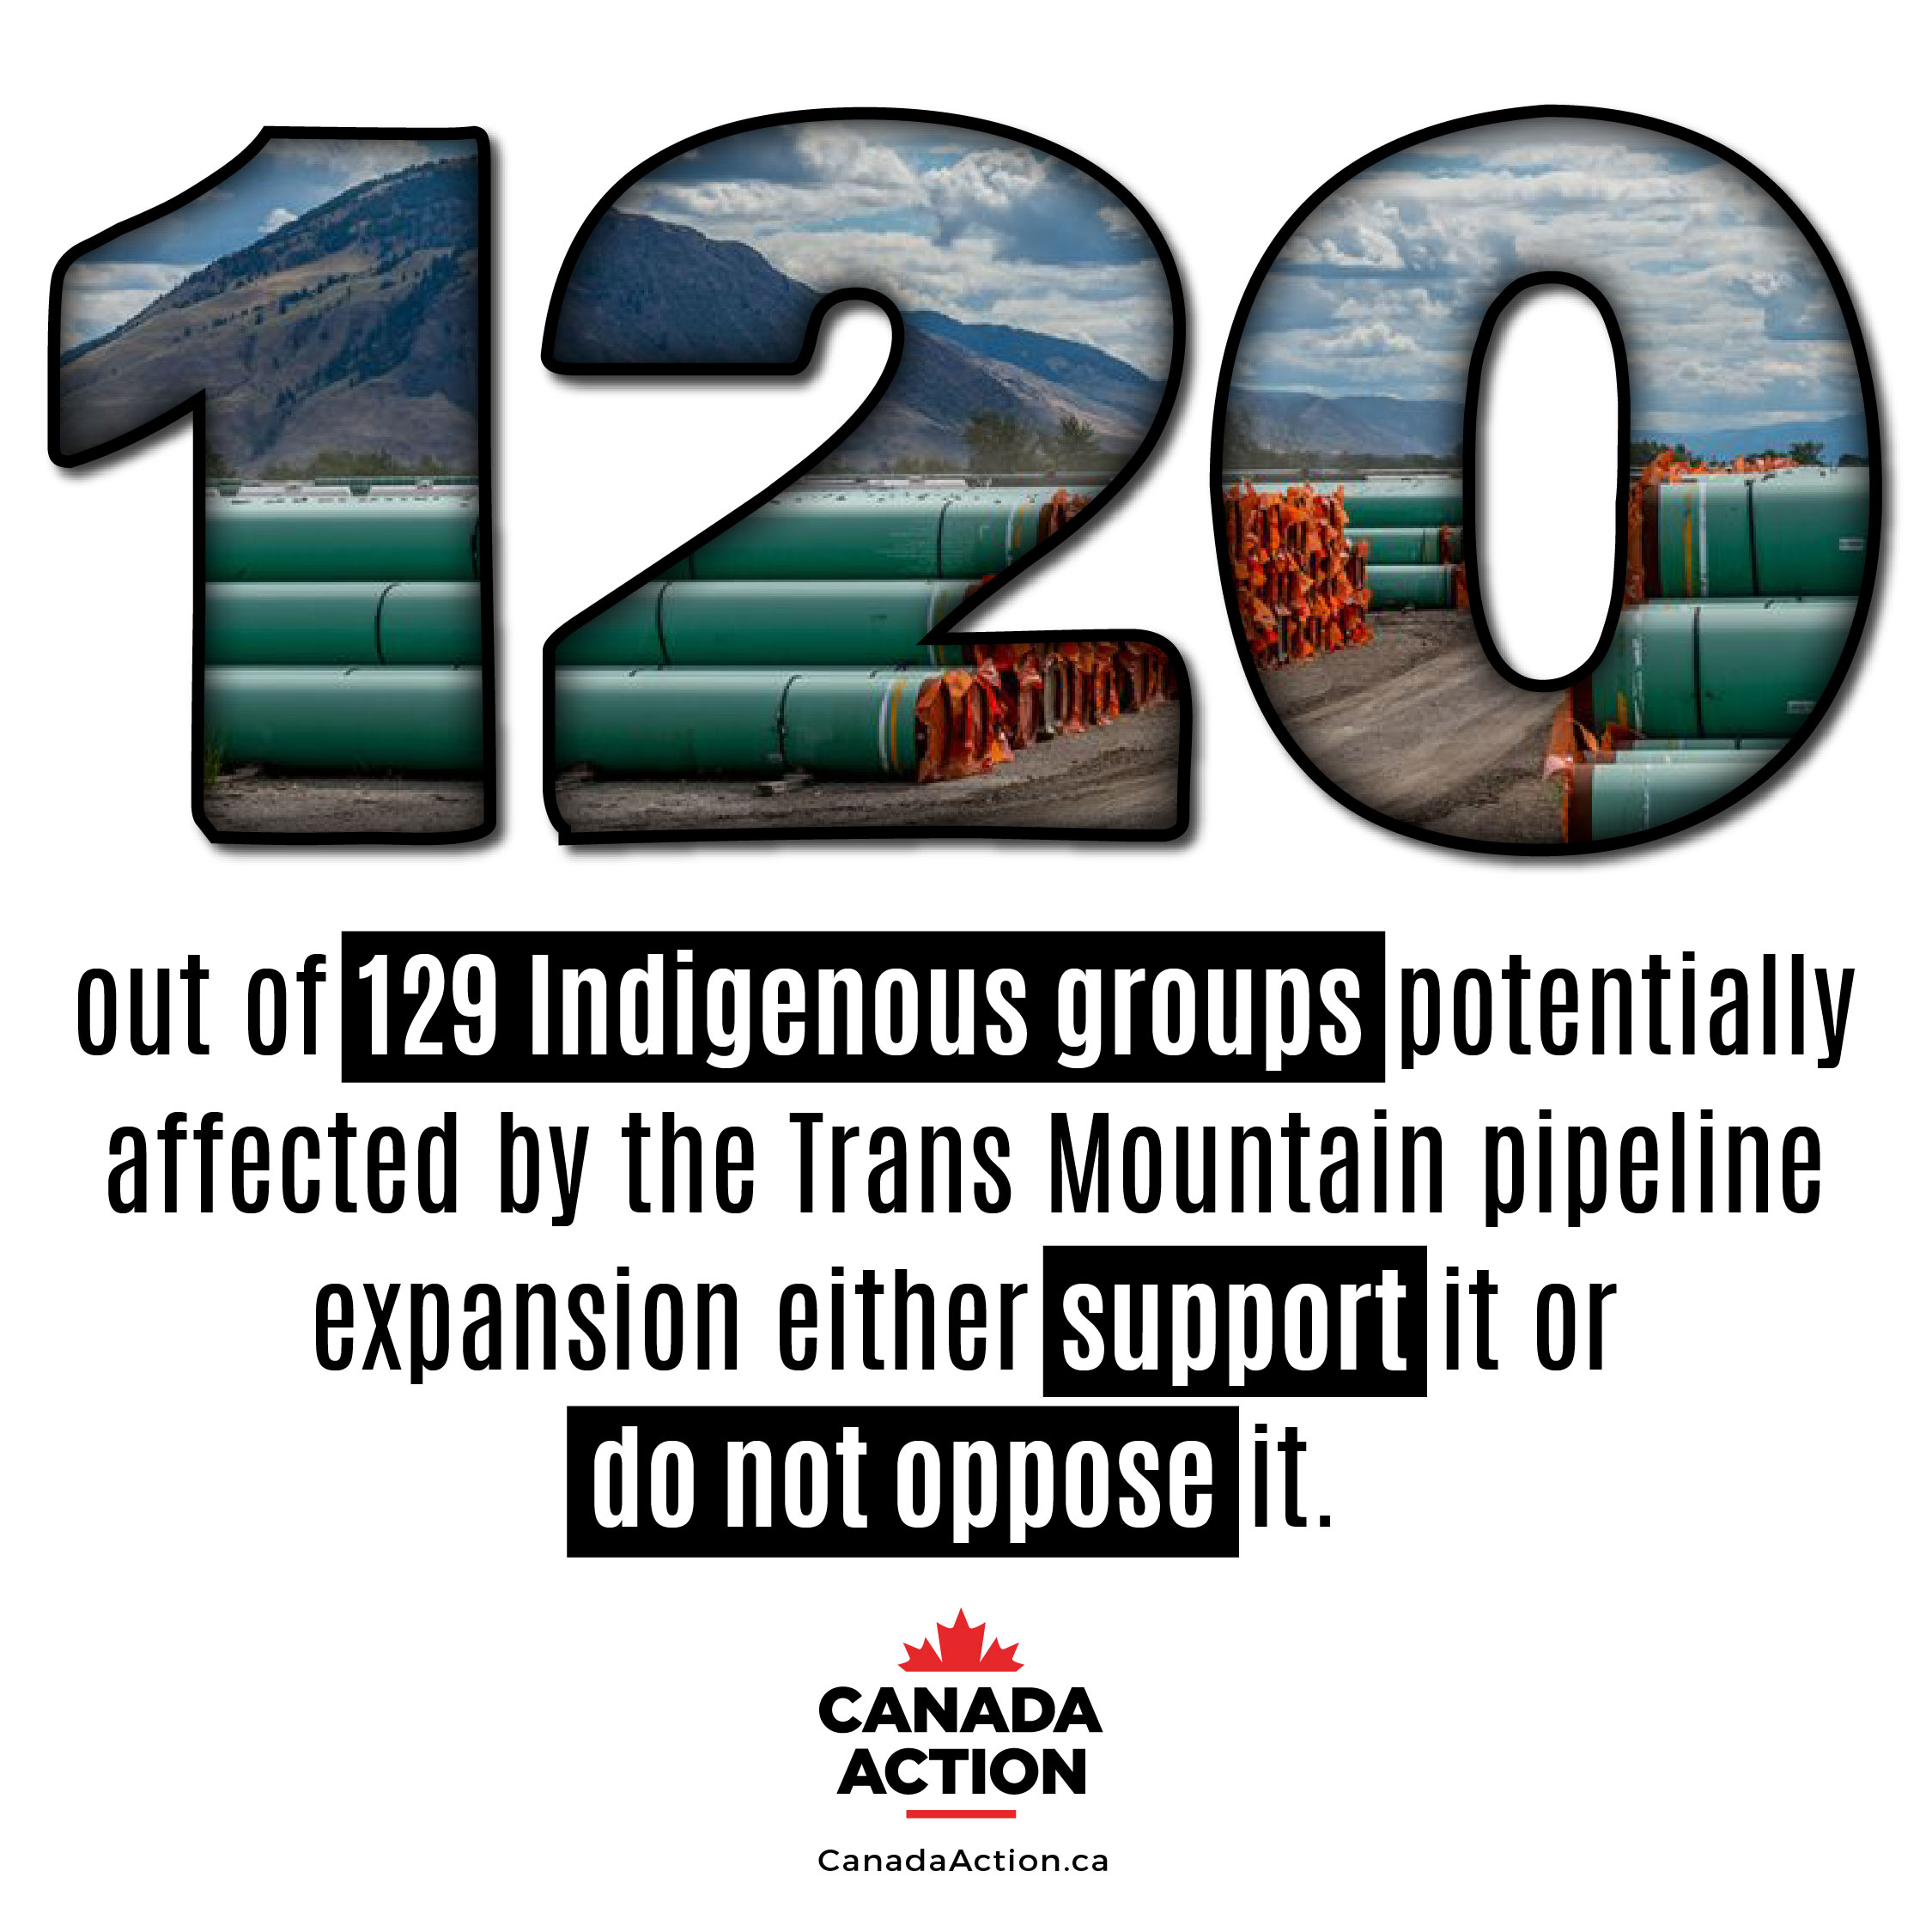 A majority of Indigenous people support trans mountain expansion pipeline